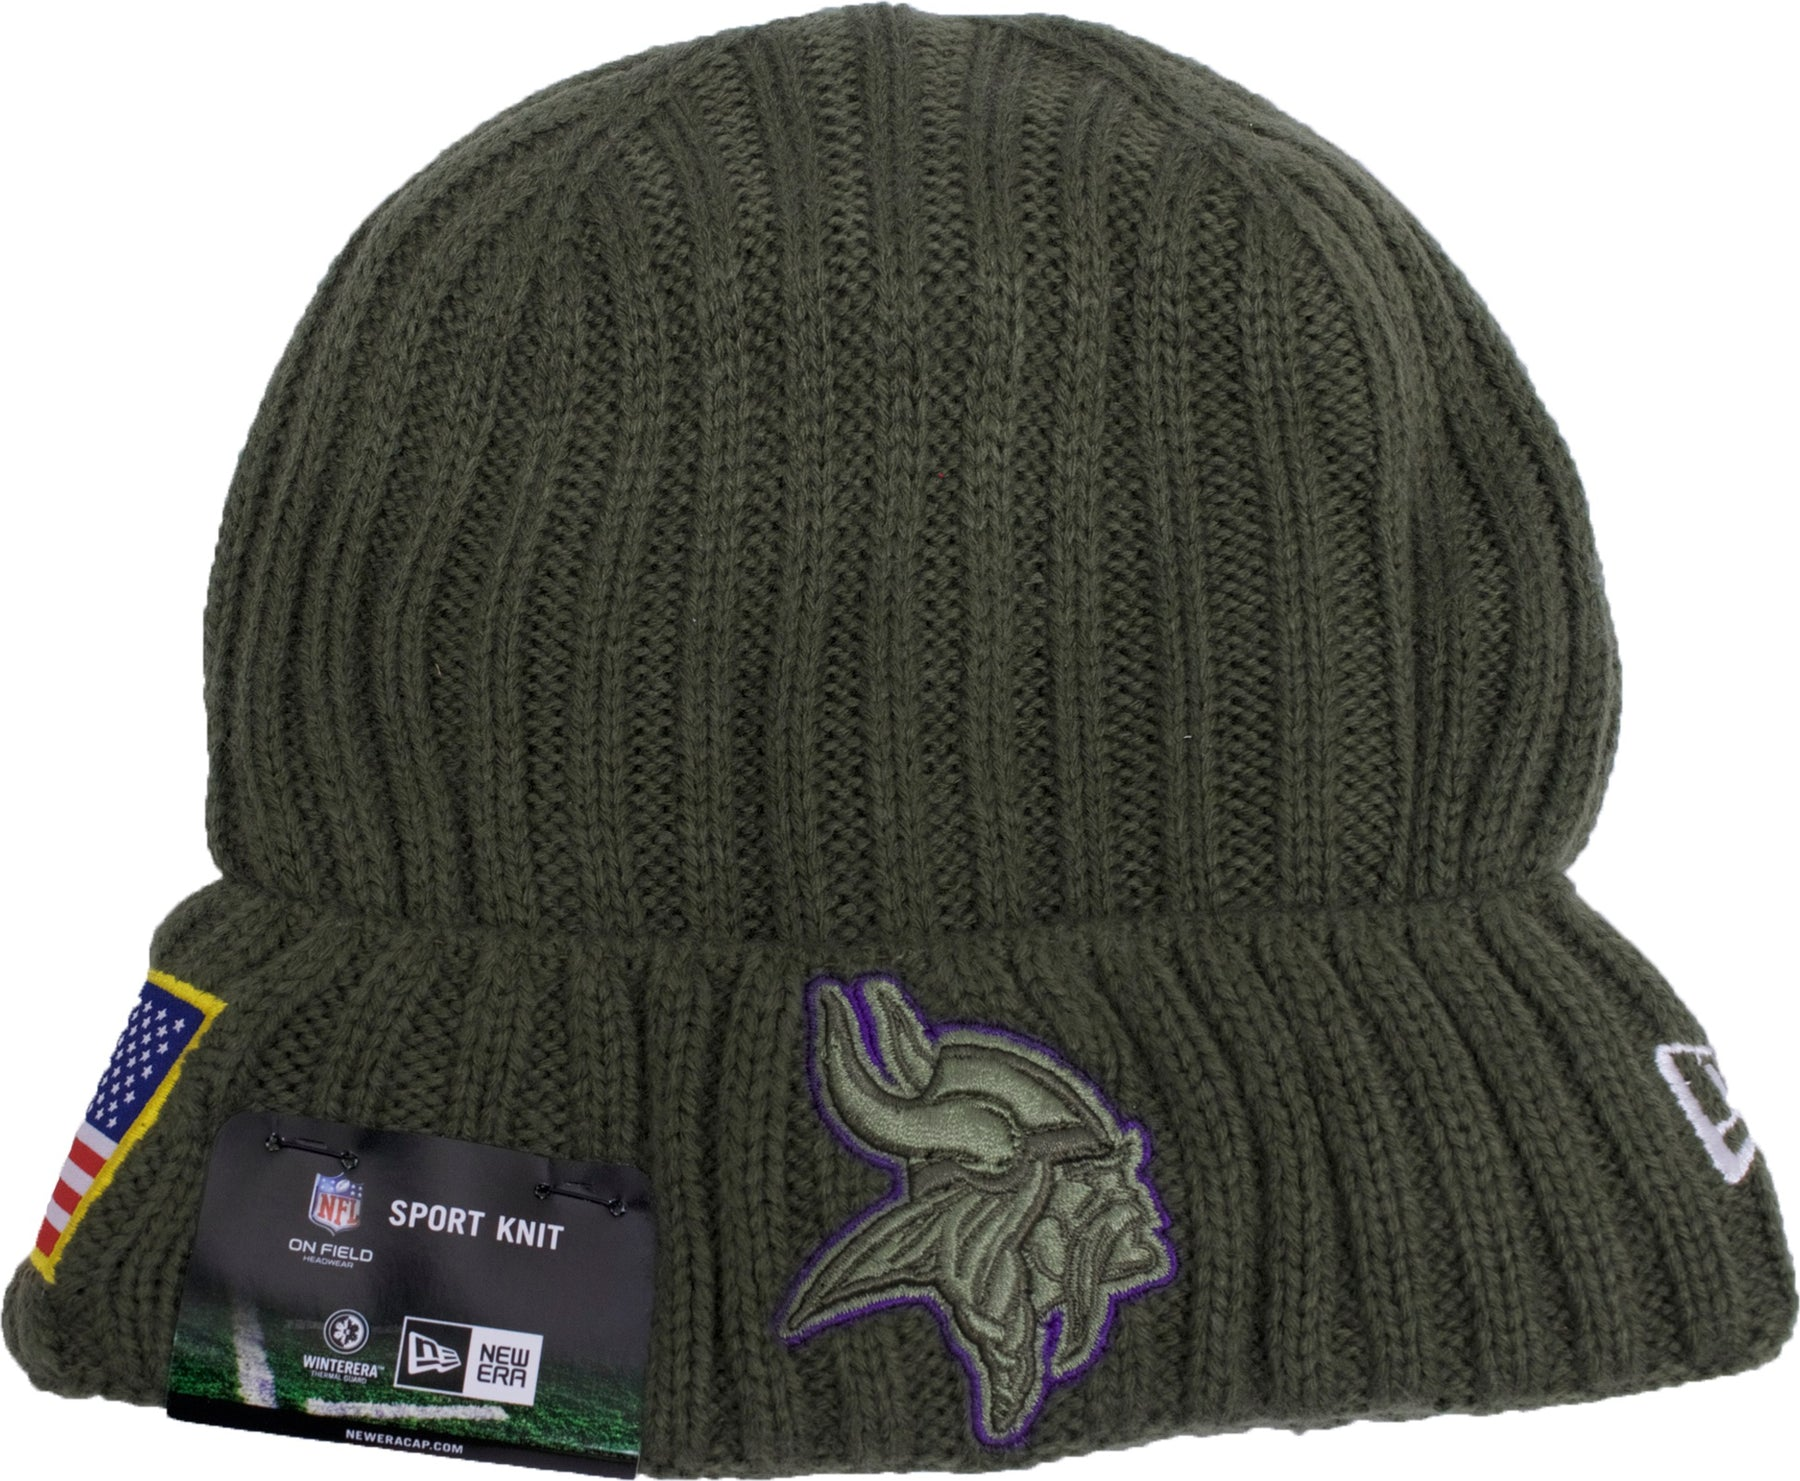 ac2332bdc5d the minnesota vikings 2017 salute service beanie is solid green